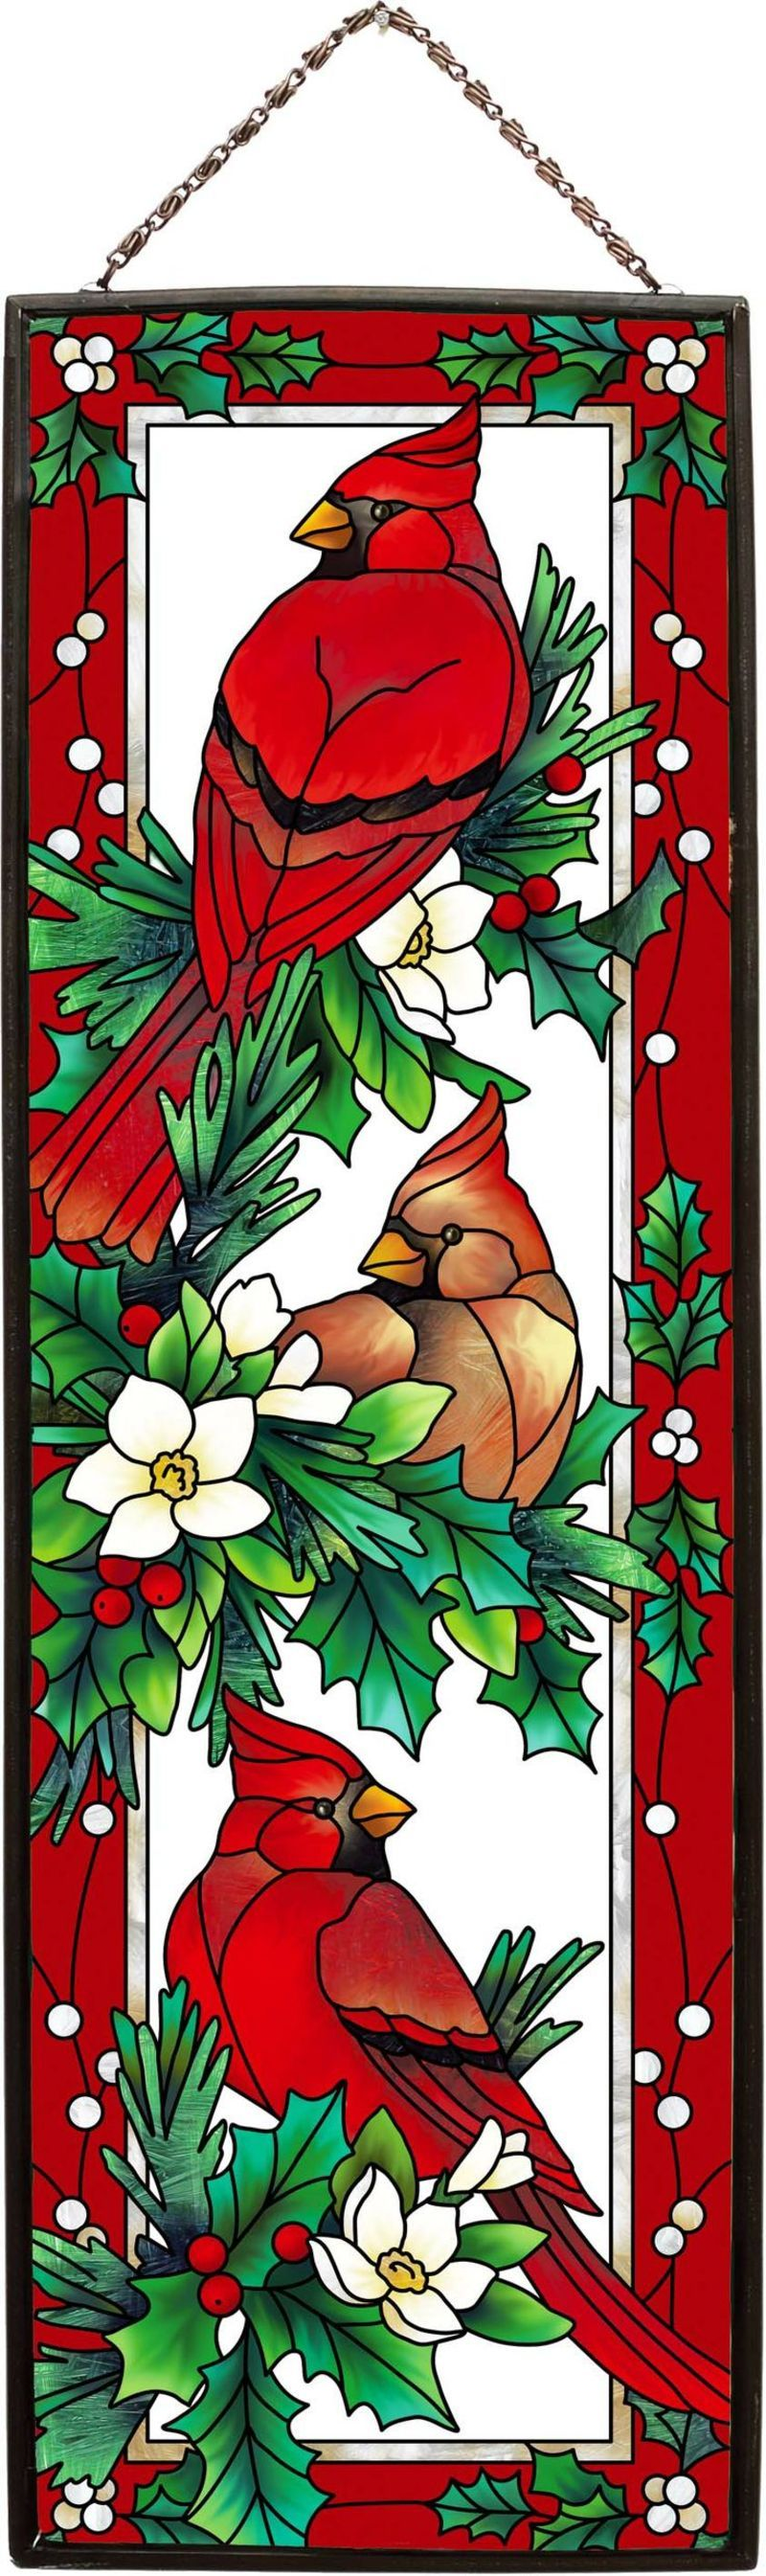 Belles Images Noel Page 2 Stained Glass Christmas Stained Glass Wine Glass Art